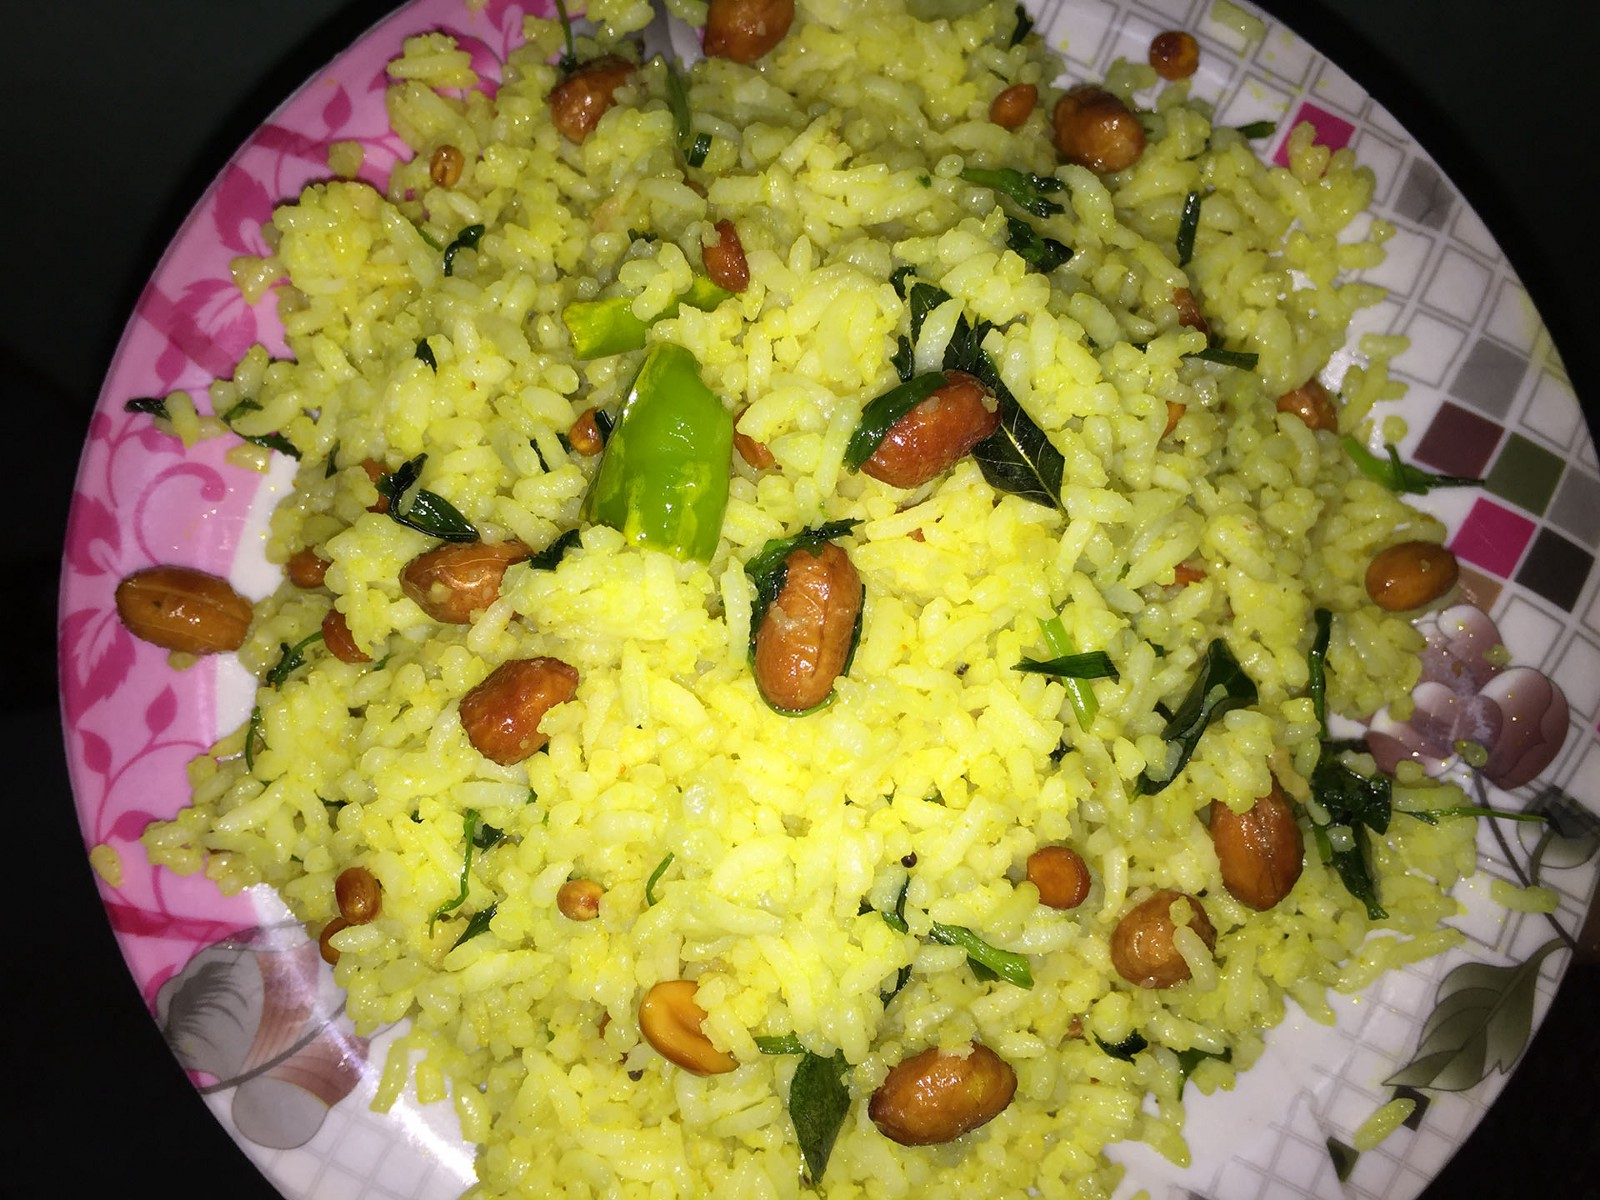 Lemon Rice Is The Easy And Simple Recipe Everyone Like This Almost Every Student Office Persons Prefers As Lunch Box